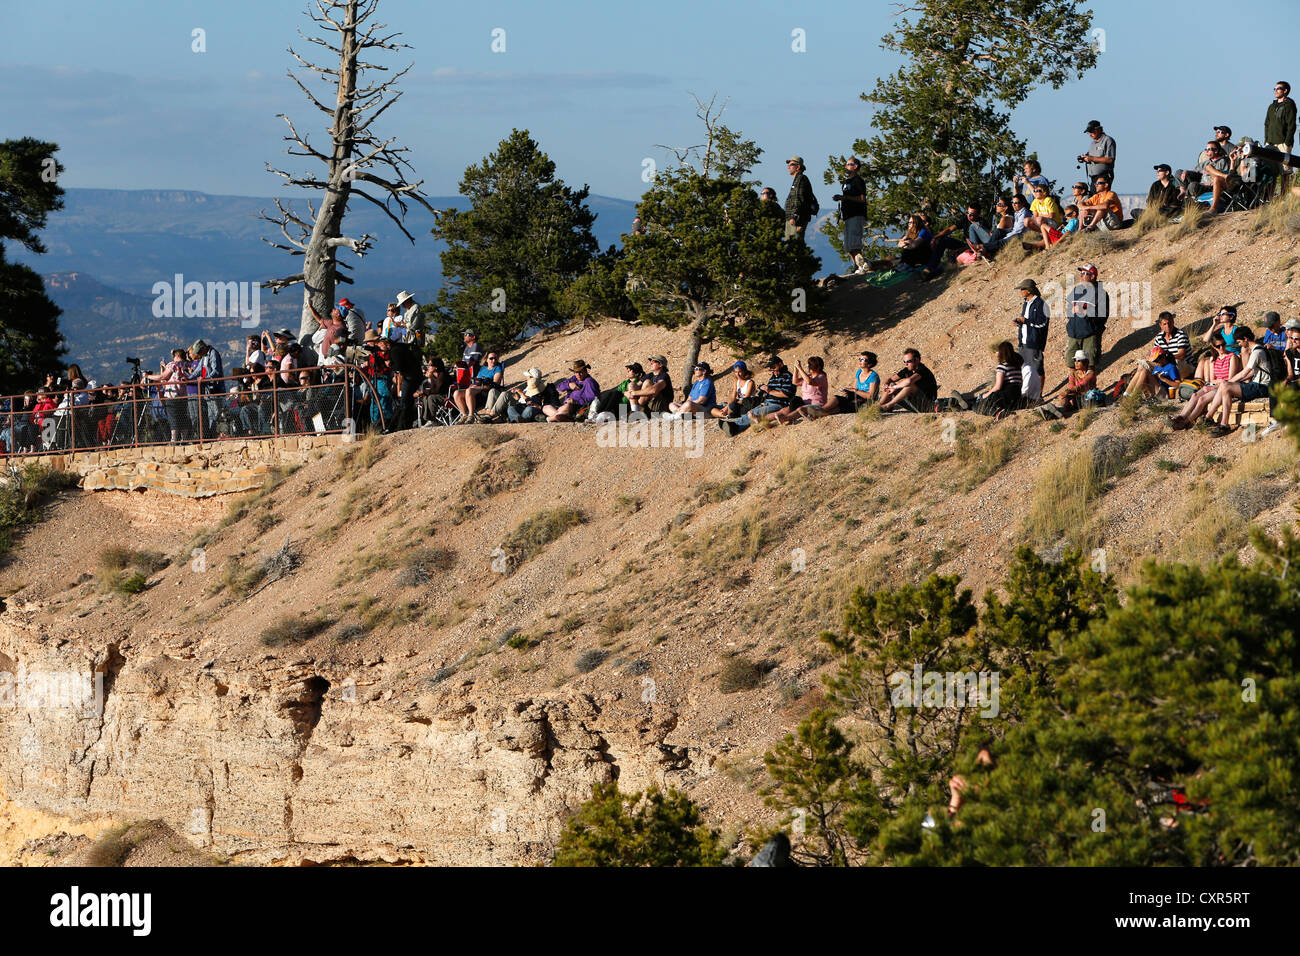 People observing the solar eclipse of 20th May 2012, Bryce Canyon National Park, Utah, USA - Stock Image